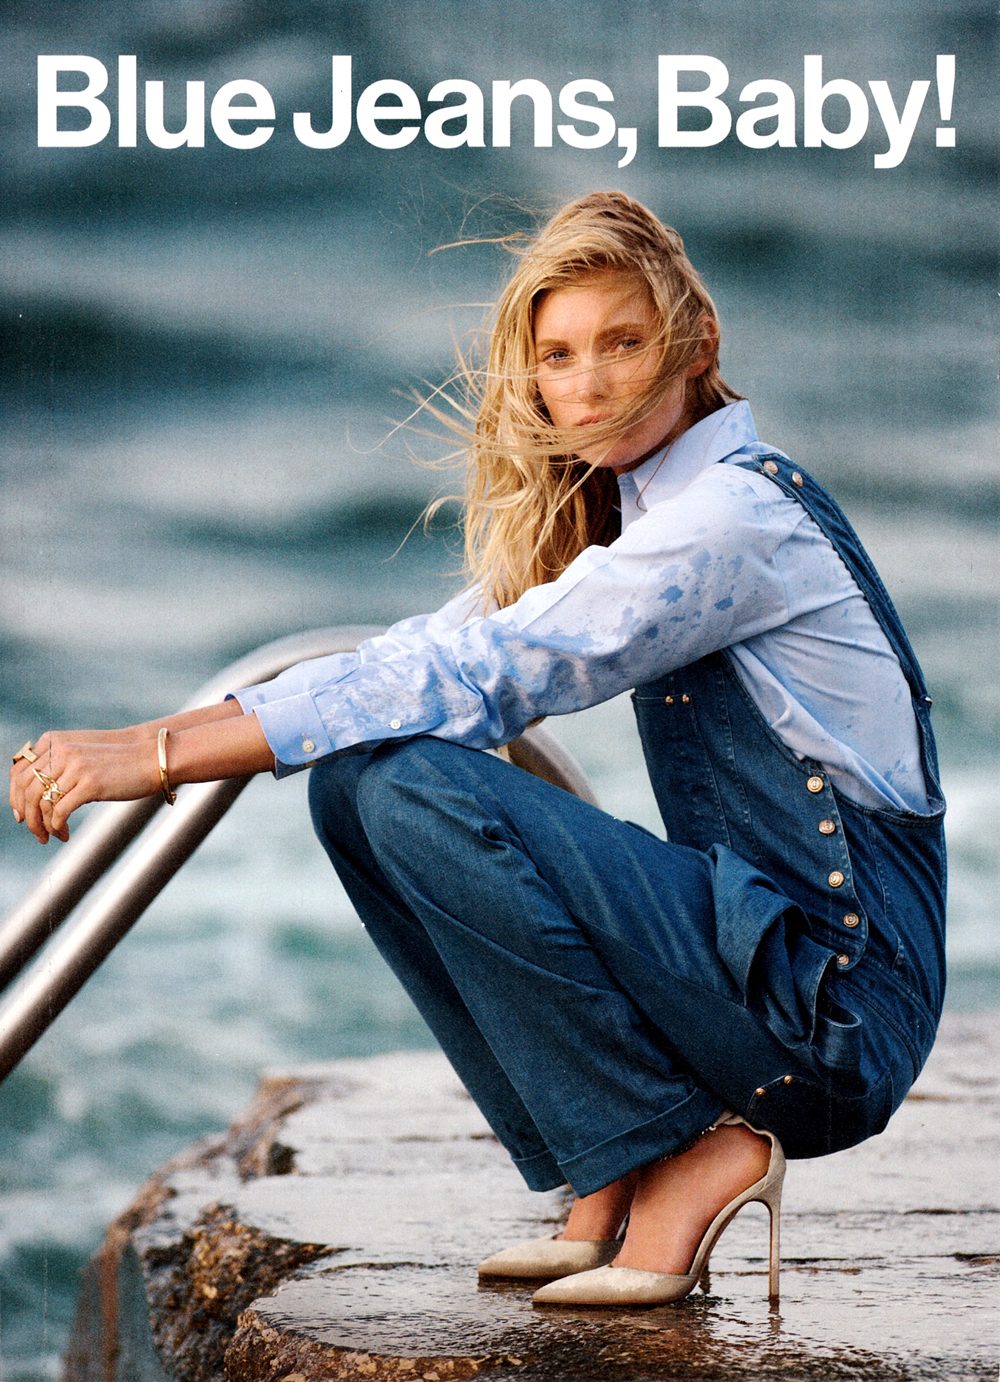 Elsa Hosk photographed by Gilles Bensimon and styled by Anne Christensen for Blue Jeans Baby editorial feat. in Glamour US January 2014